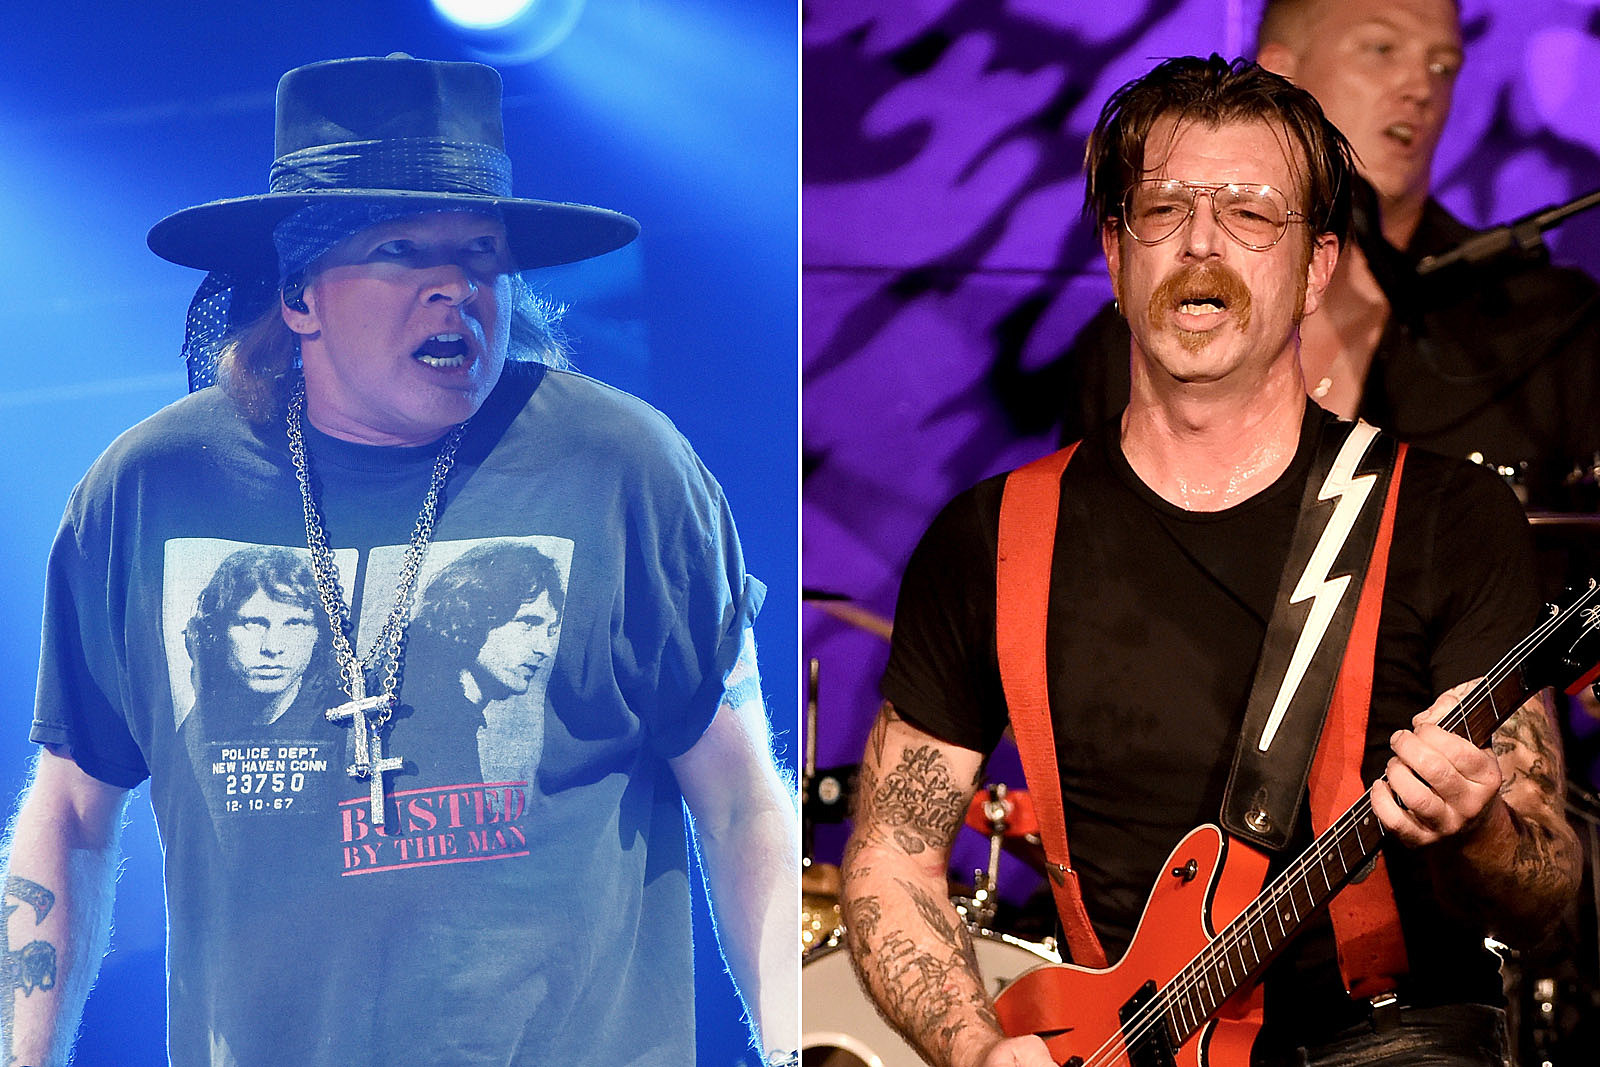 Eagles of Death Metal Star Covers Guns N' Roses on New Album